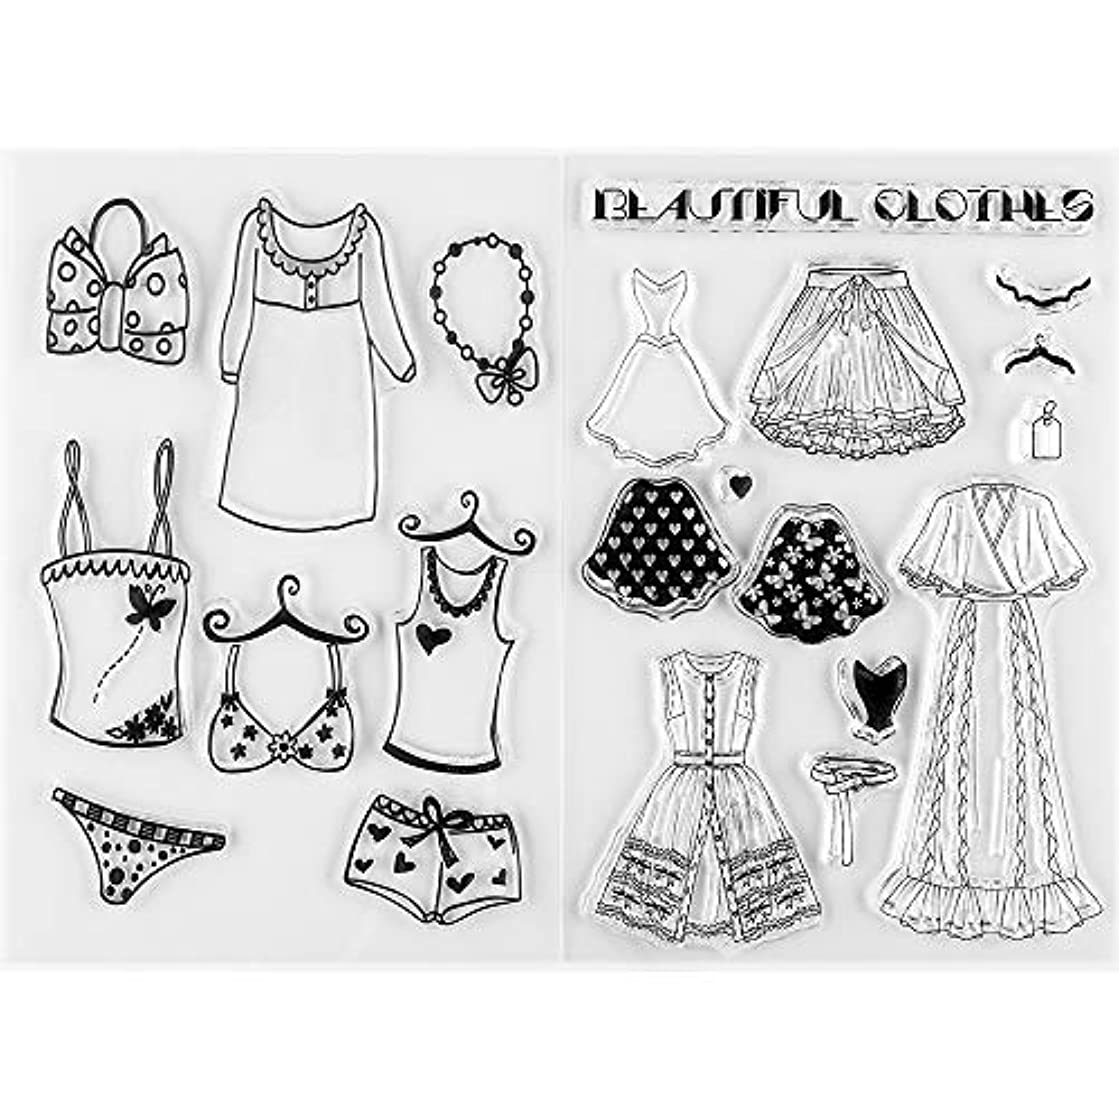 MaGuo Clear Stamps Women's Clothes for Paper Craft Decoration and DIY Scrapbooking